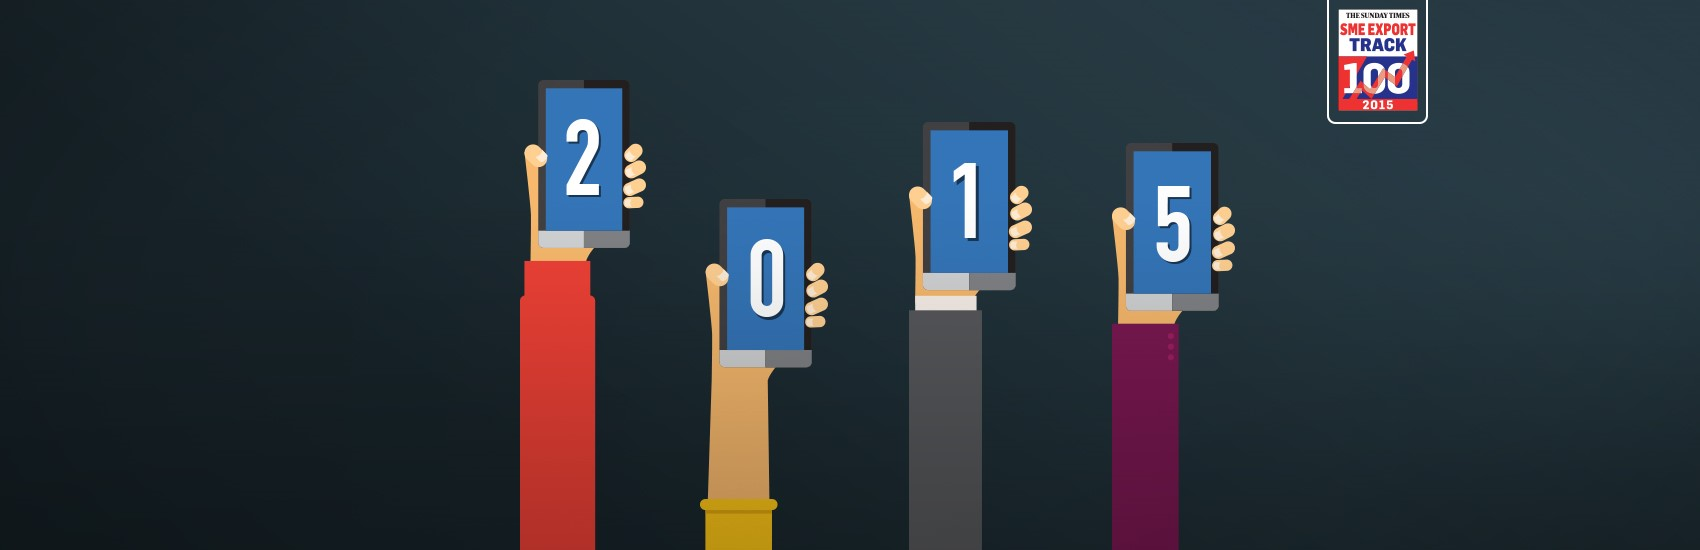 2015_the_Year_mPOS_and_Mobile_Payments_Came_of_Age